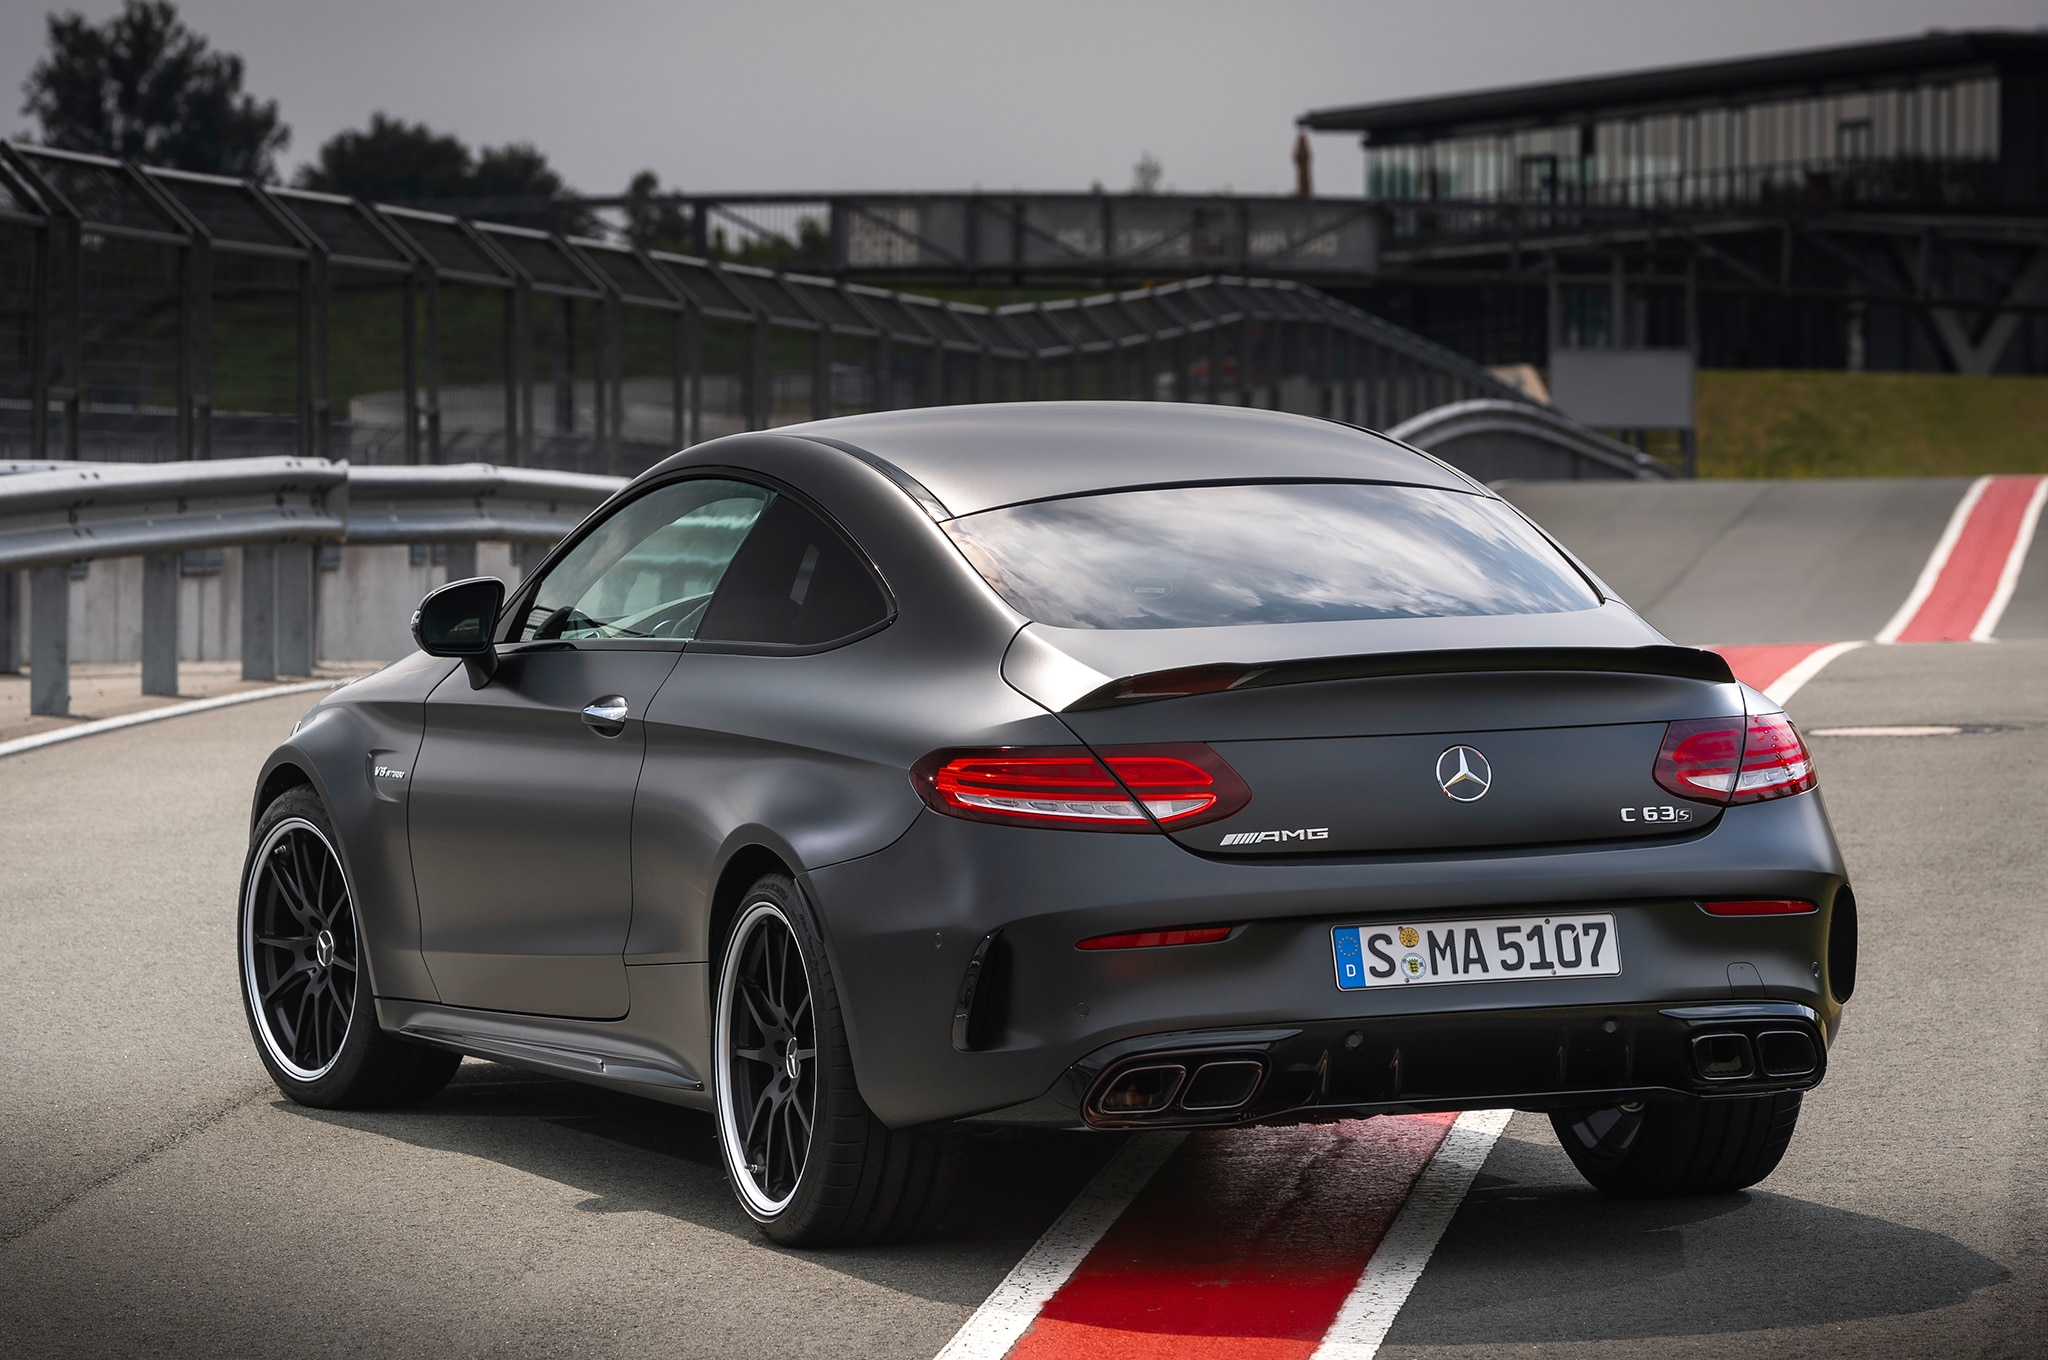 2019 Mercedes Amg C 63 S Coupe First Drive Review Automobile Magazine